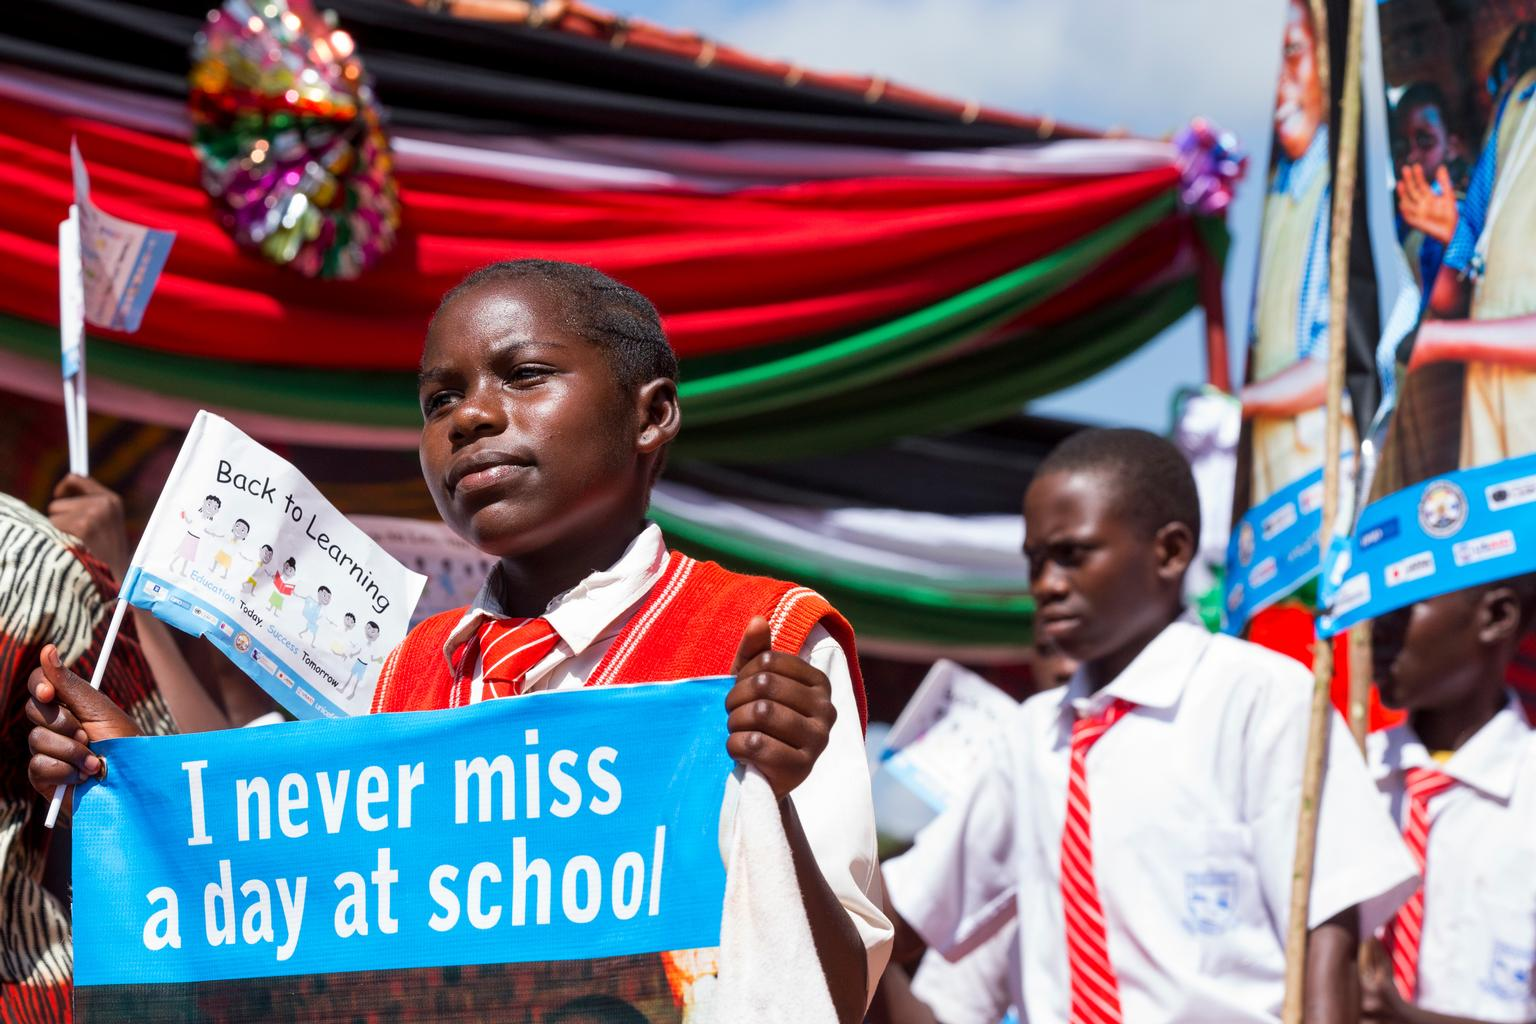 Schoolchildren at the launch of the UNICEF-supported Back to Learning campaign in Yambio County in Western Equatoria State. © UNICEF/NYHQ2015-1513/McIlwaine